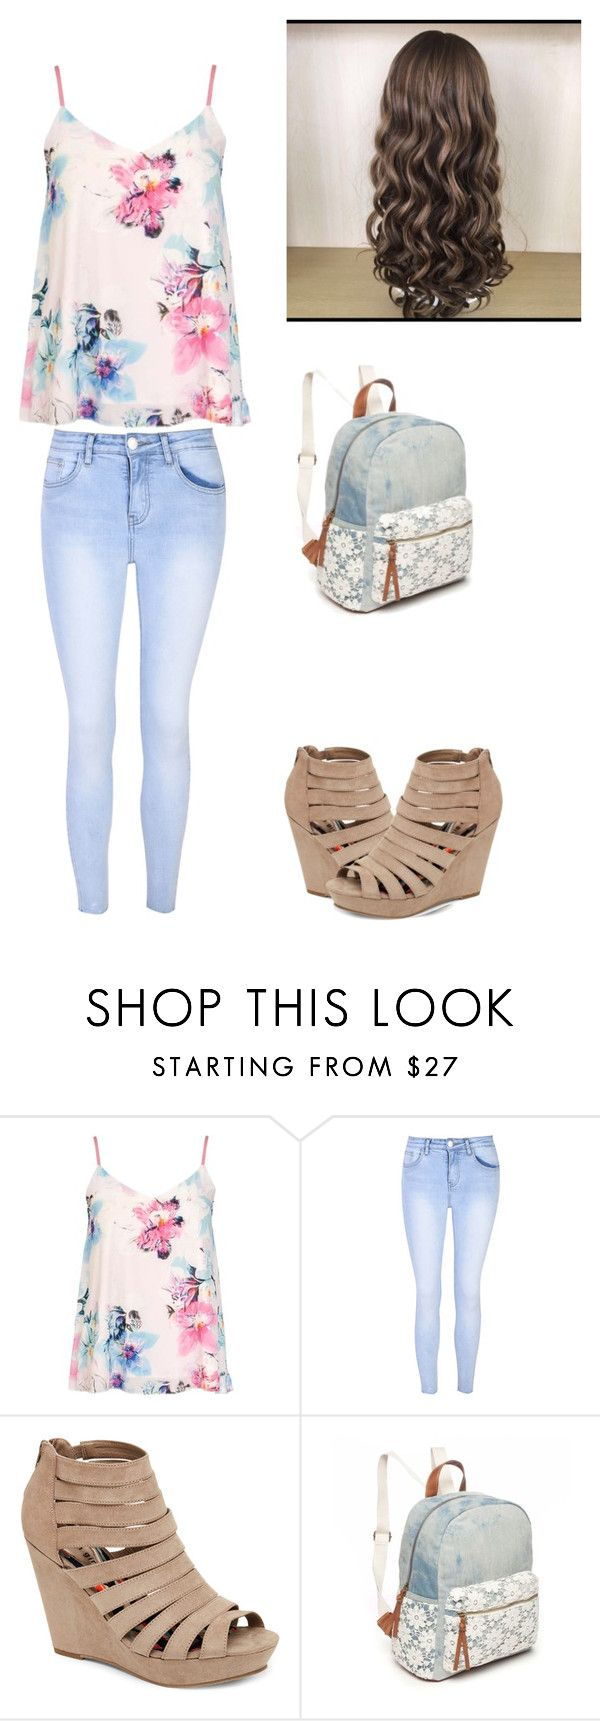 """""""because it is so cutttte!!!!!!!!!!!!!!!!!!!!!!!!!!!!!!!!"""" by m-d-cardin ❤ liked on Polyvore featuring Dorothy Perkins, Glamorous, Madden Girl and Red Camel"""